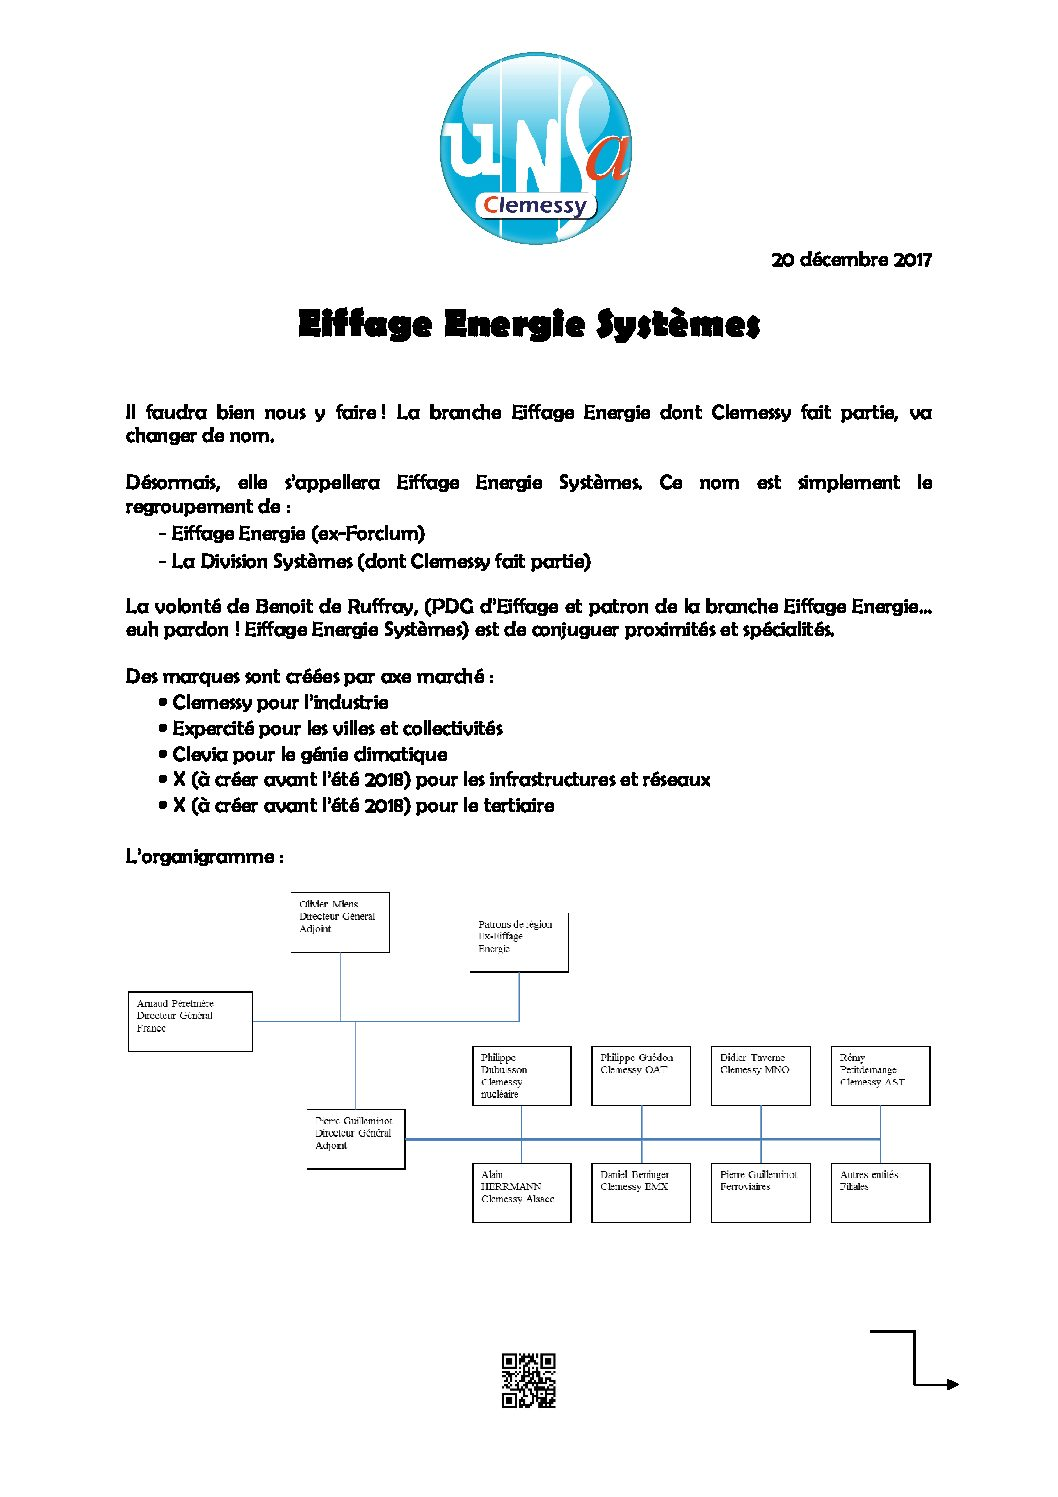 Nouvelle-organisation-Eiffage-energie-systemes